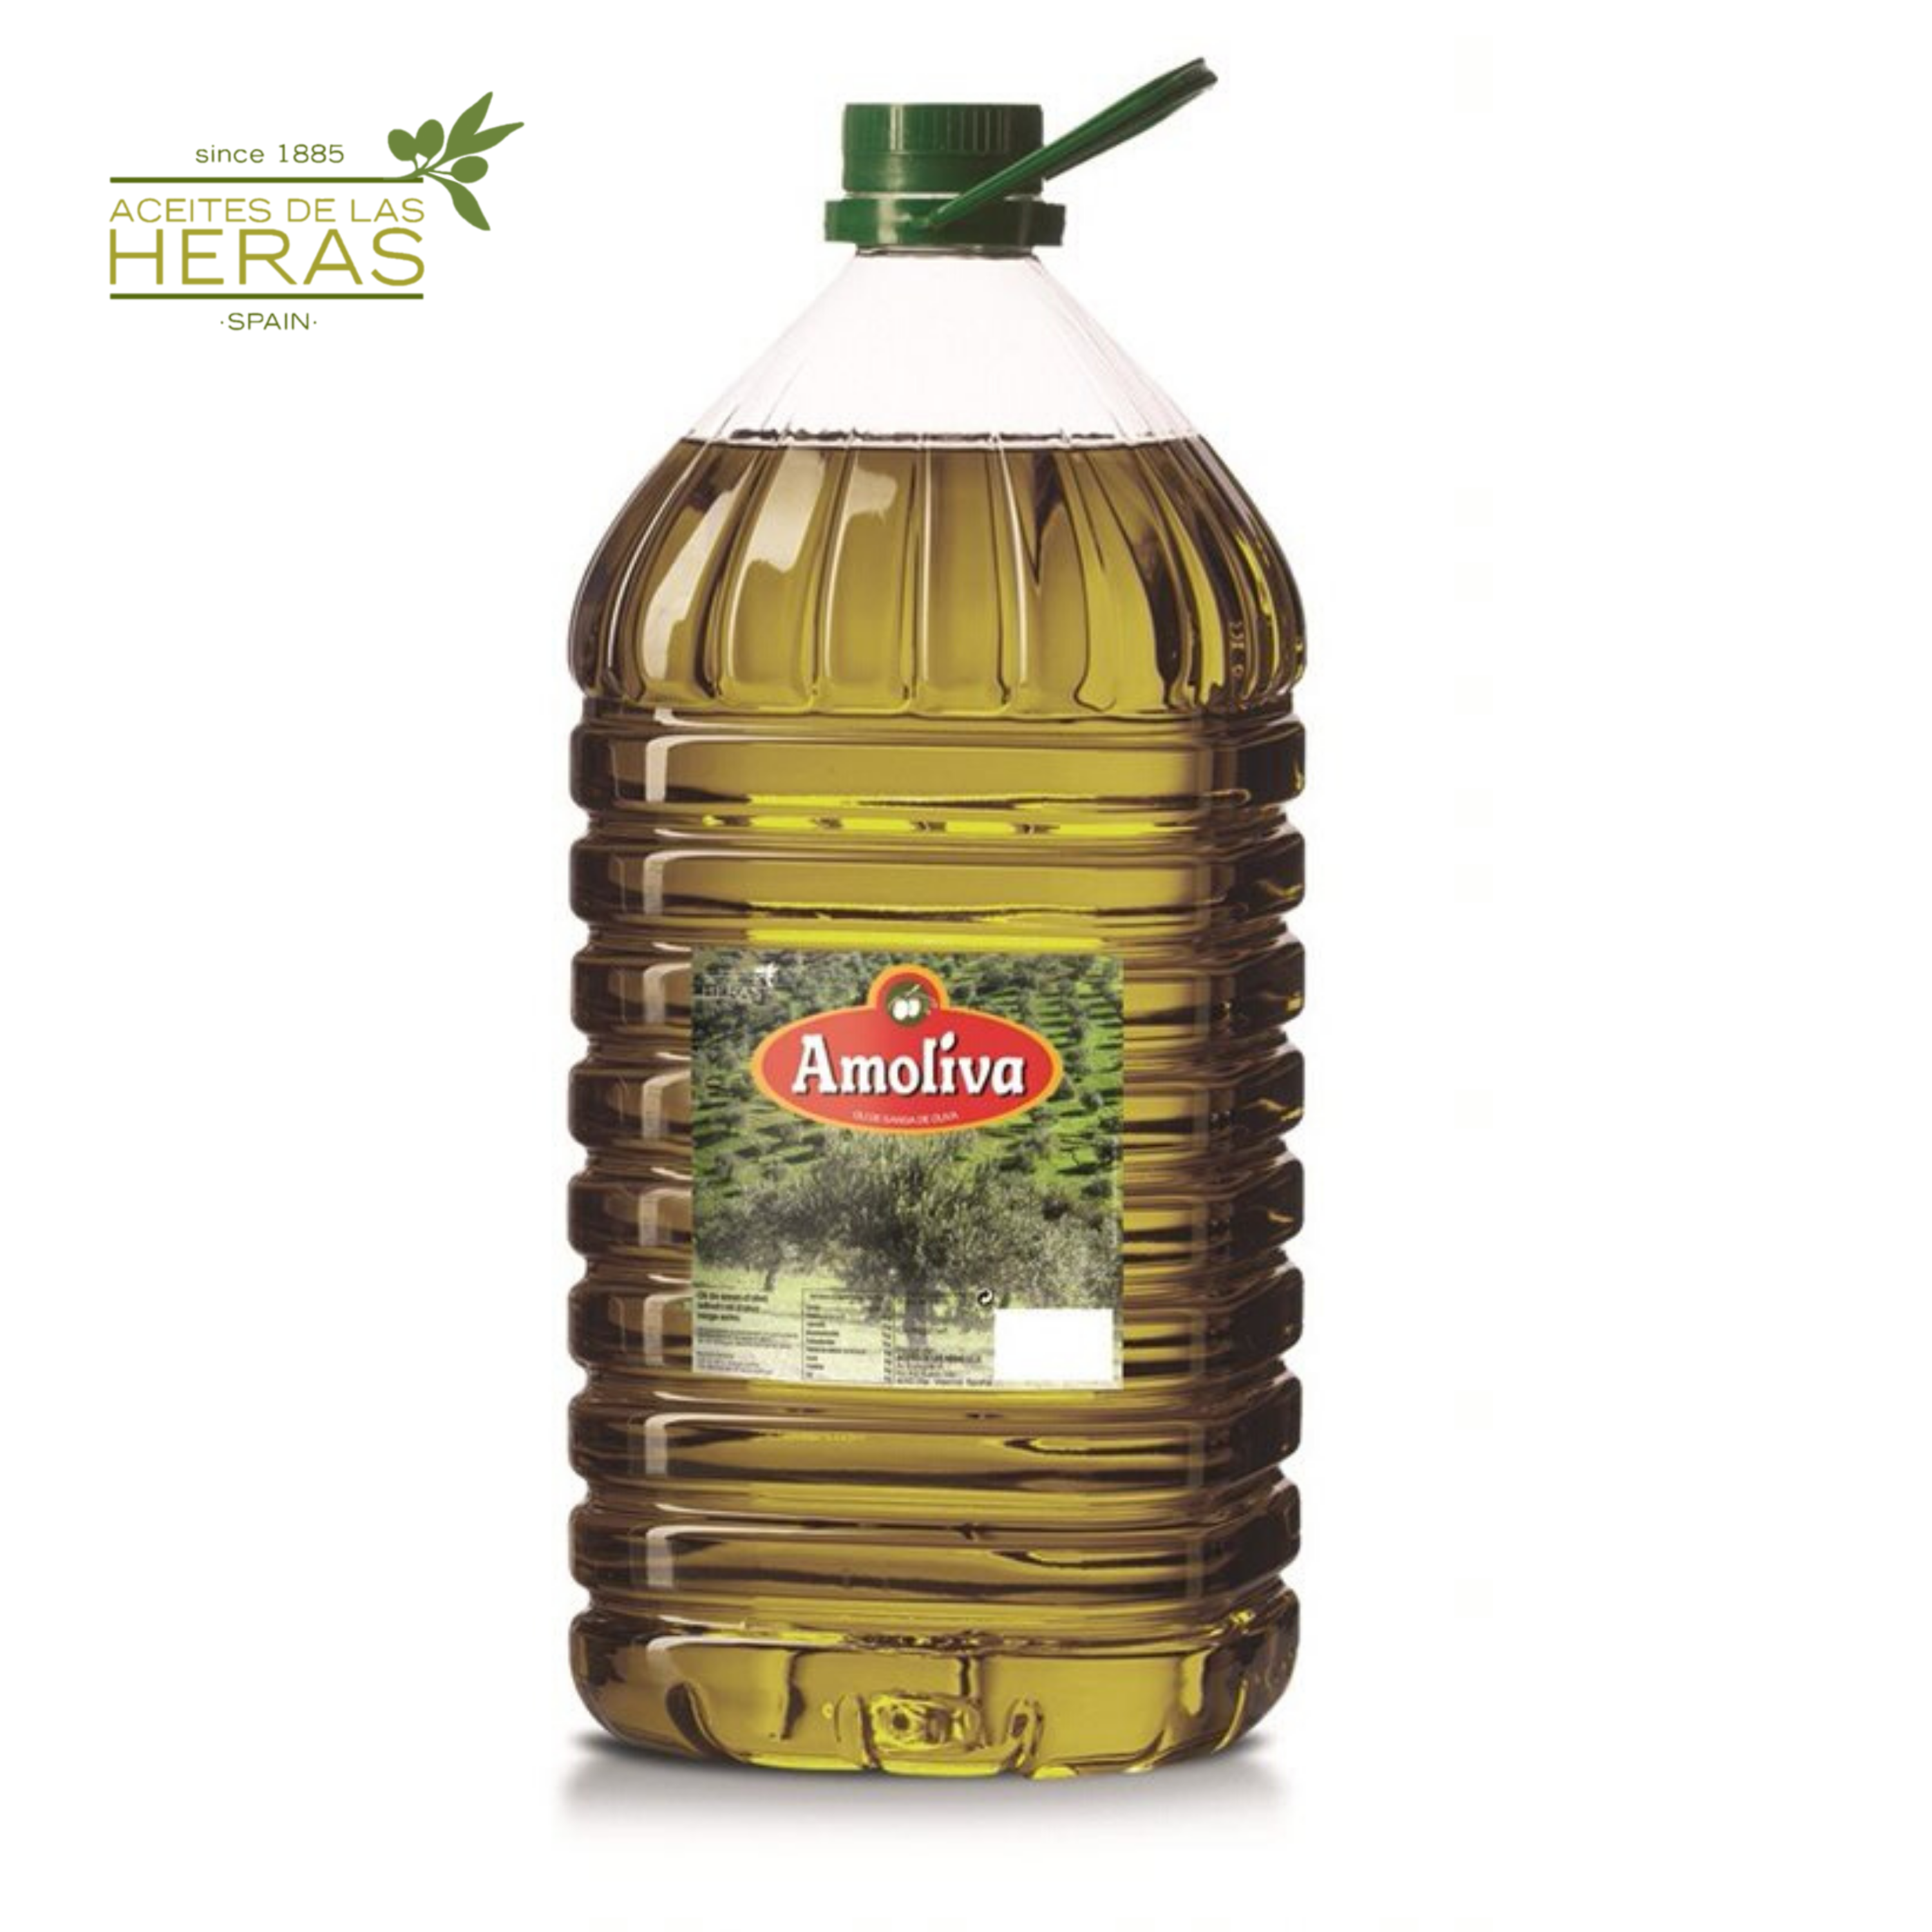 Amoliva - High Quality Pomace Olive Oil - 5 l PET Bottle - Product from Spain